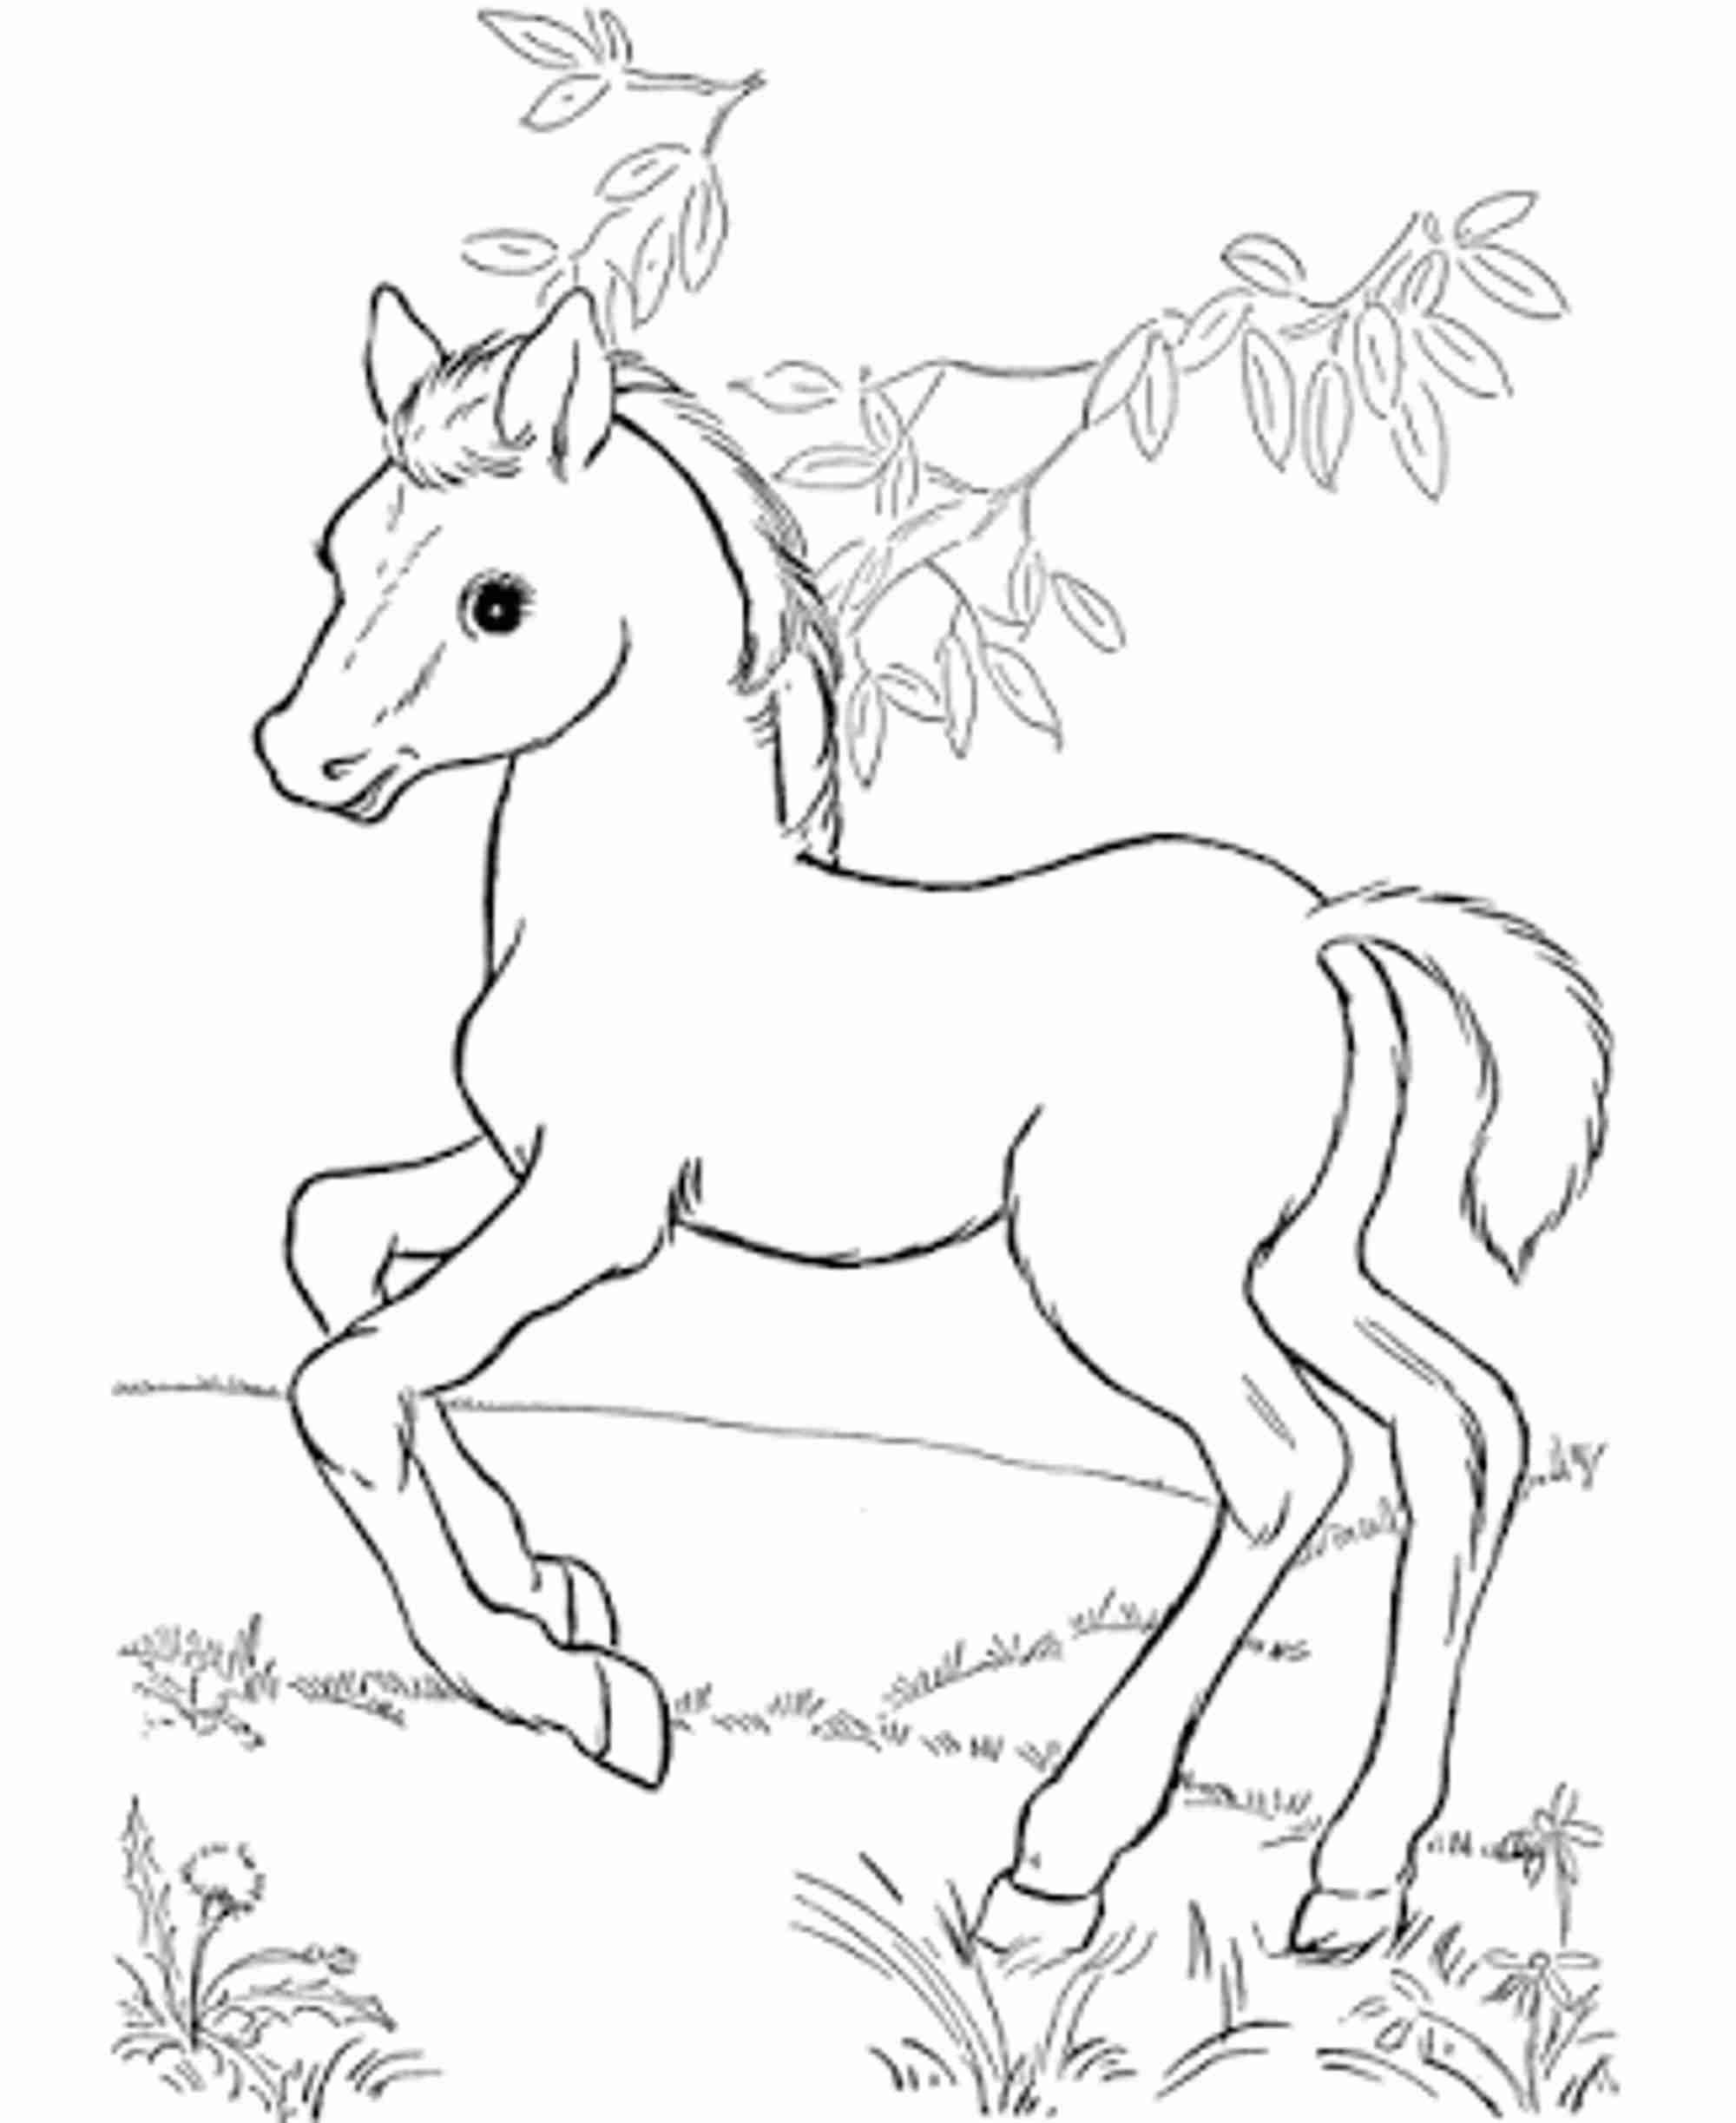 coloring pages of horses to print horse coloring pages to download and print for free pages to print horses of coloring